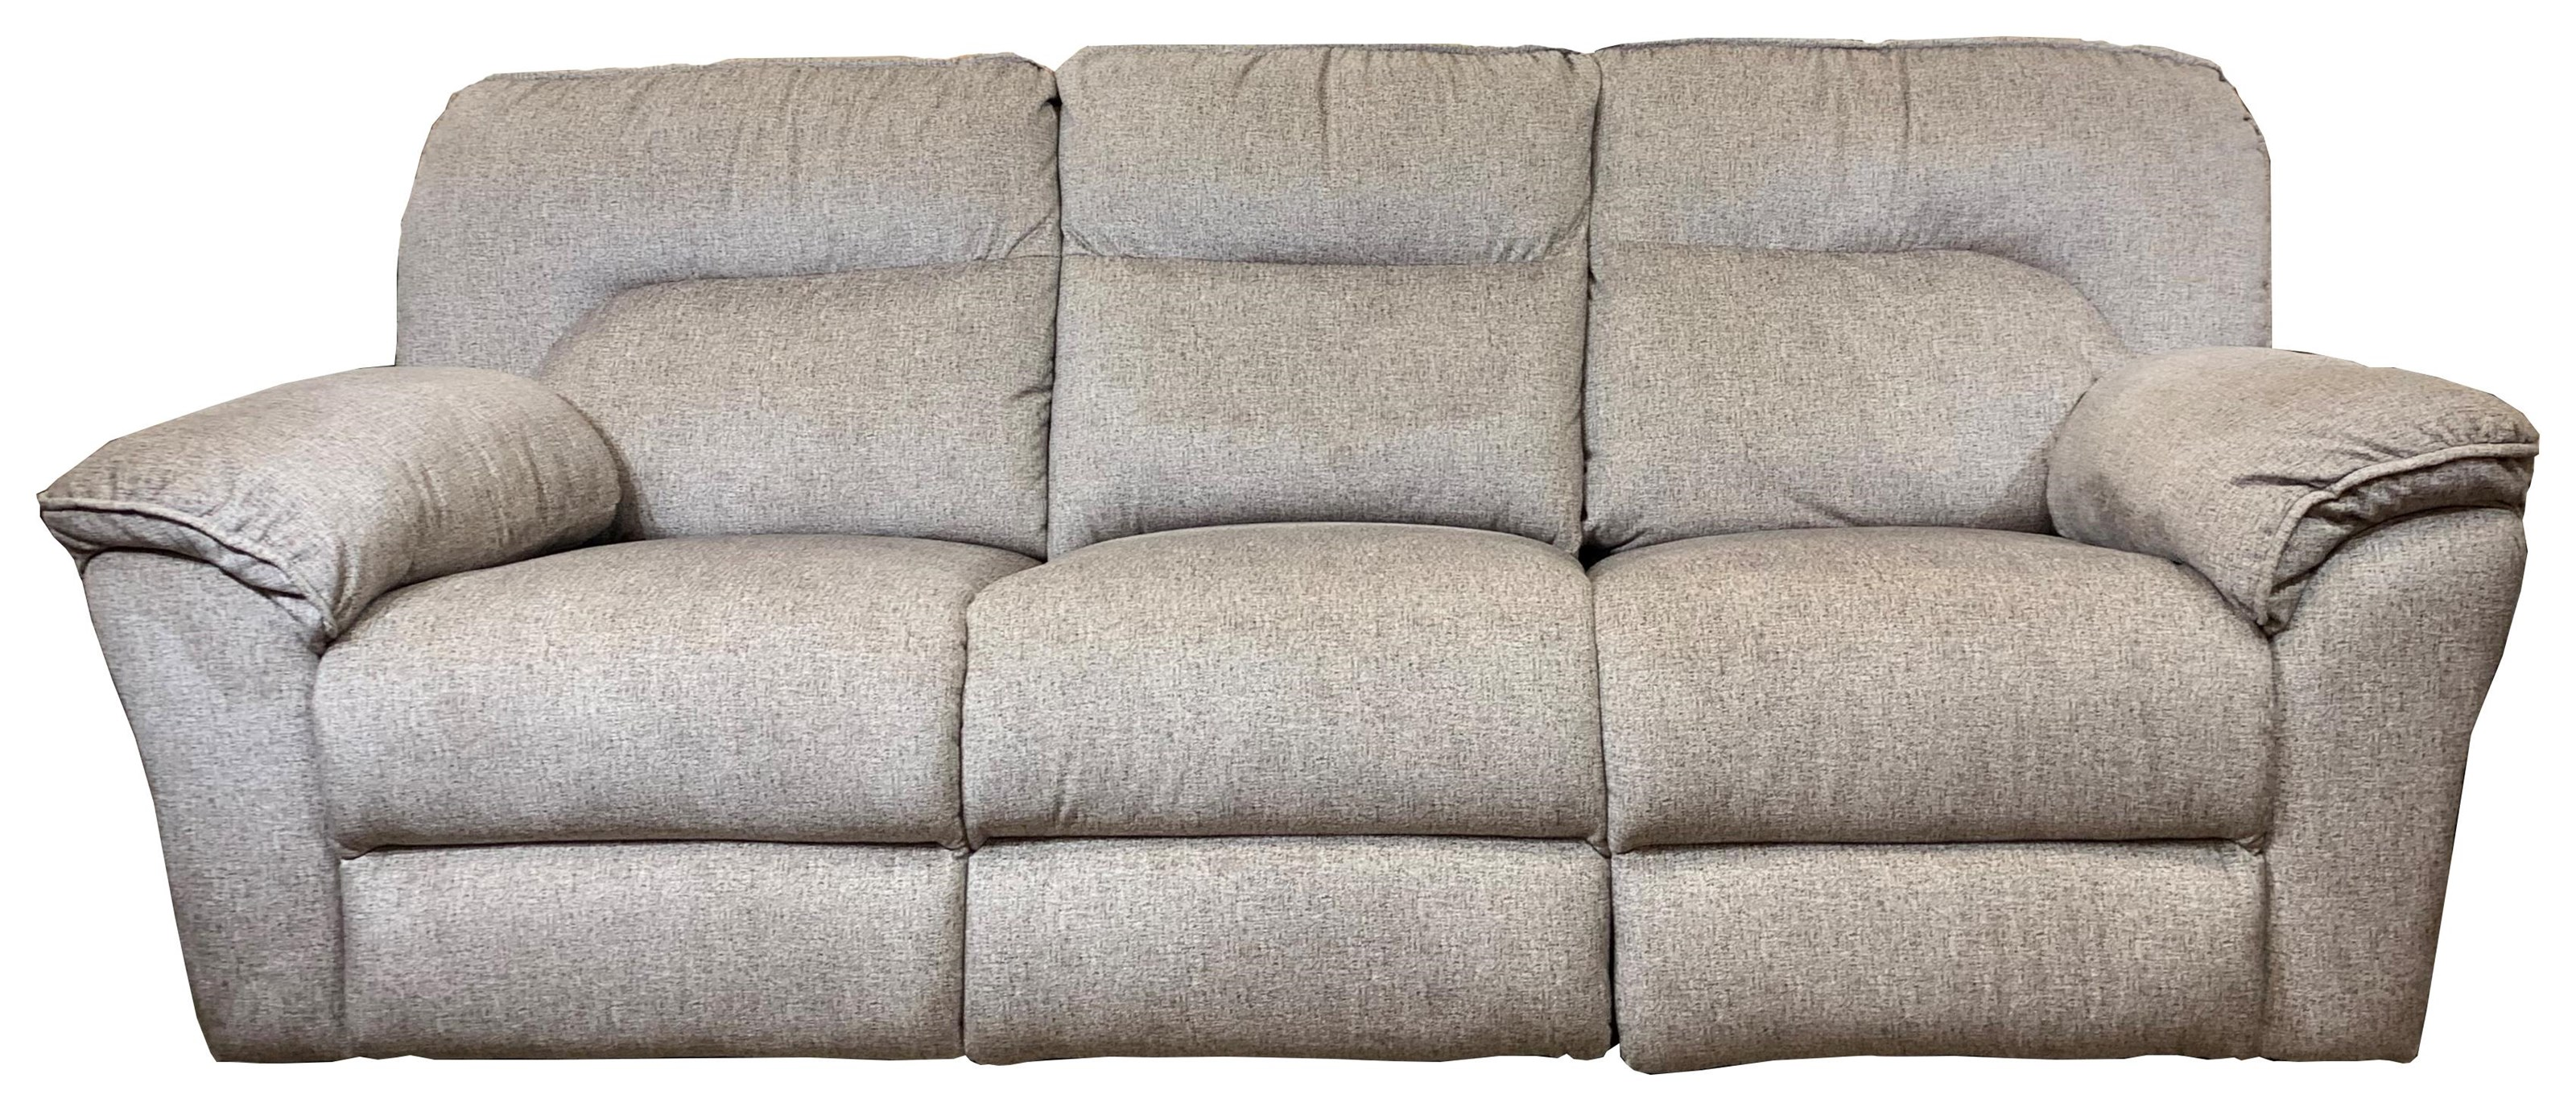 Full Ride Double Reclining Sofa  by Southern Motion at Godby Home Furnishings